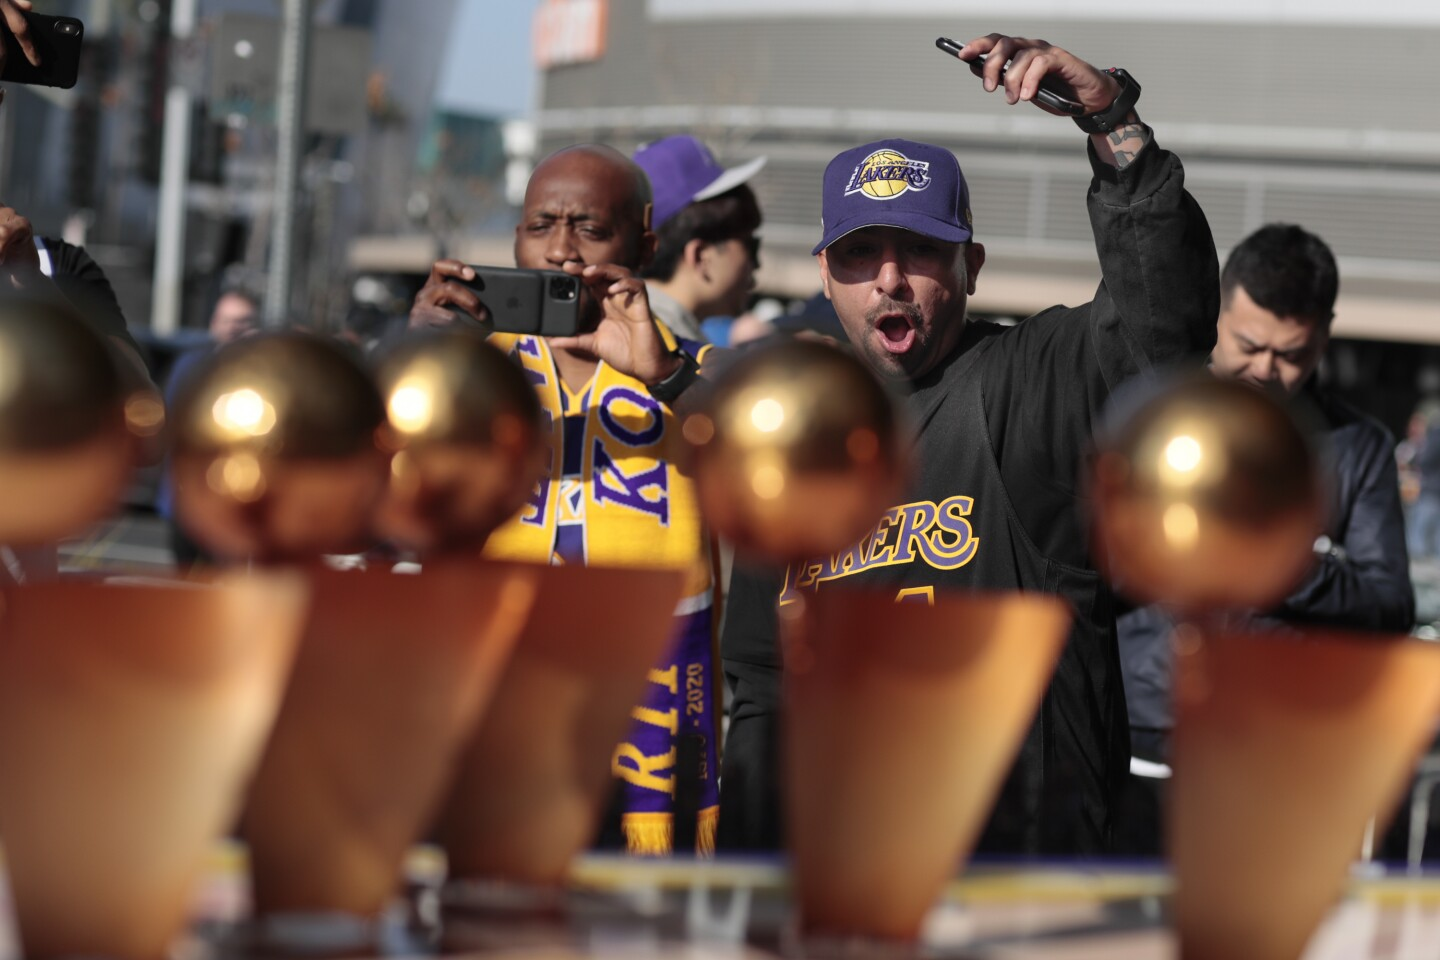 LOS ANGELES, CA, MONDAY, FEBRUARY 24, 2020 - Richard Miranda of Baldwin Park delivers a Kobe! chant as he views a diorama dedicated to the fallen Laker near Staples Center. (Robert Gauthier/Los Angeles Times)